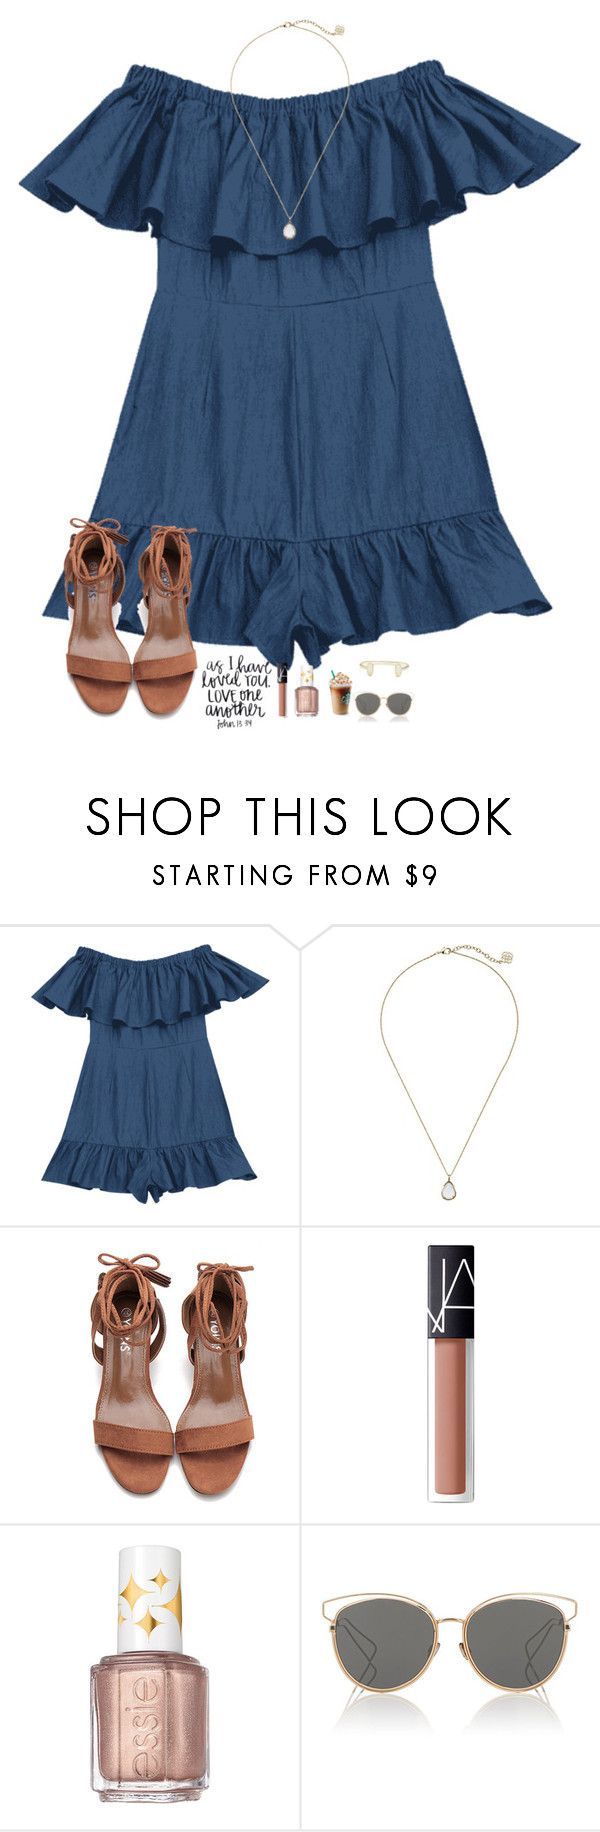 """""""Diamonds in the skye✌"""" by kolbee24 ❤ liked on Polyvore featuring beauty, Kendra Scott, NARS Cosmetics, Essie and Christian Dior"""